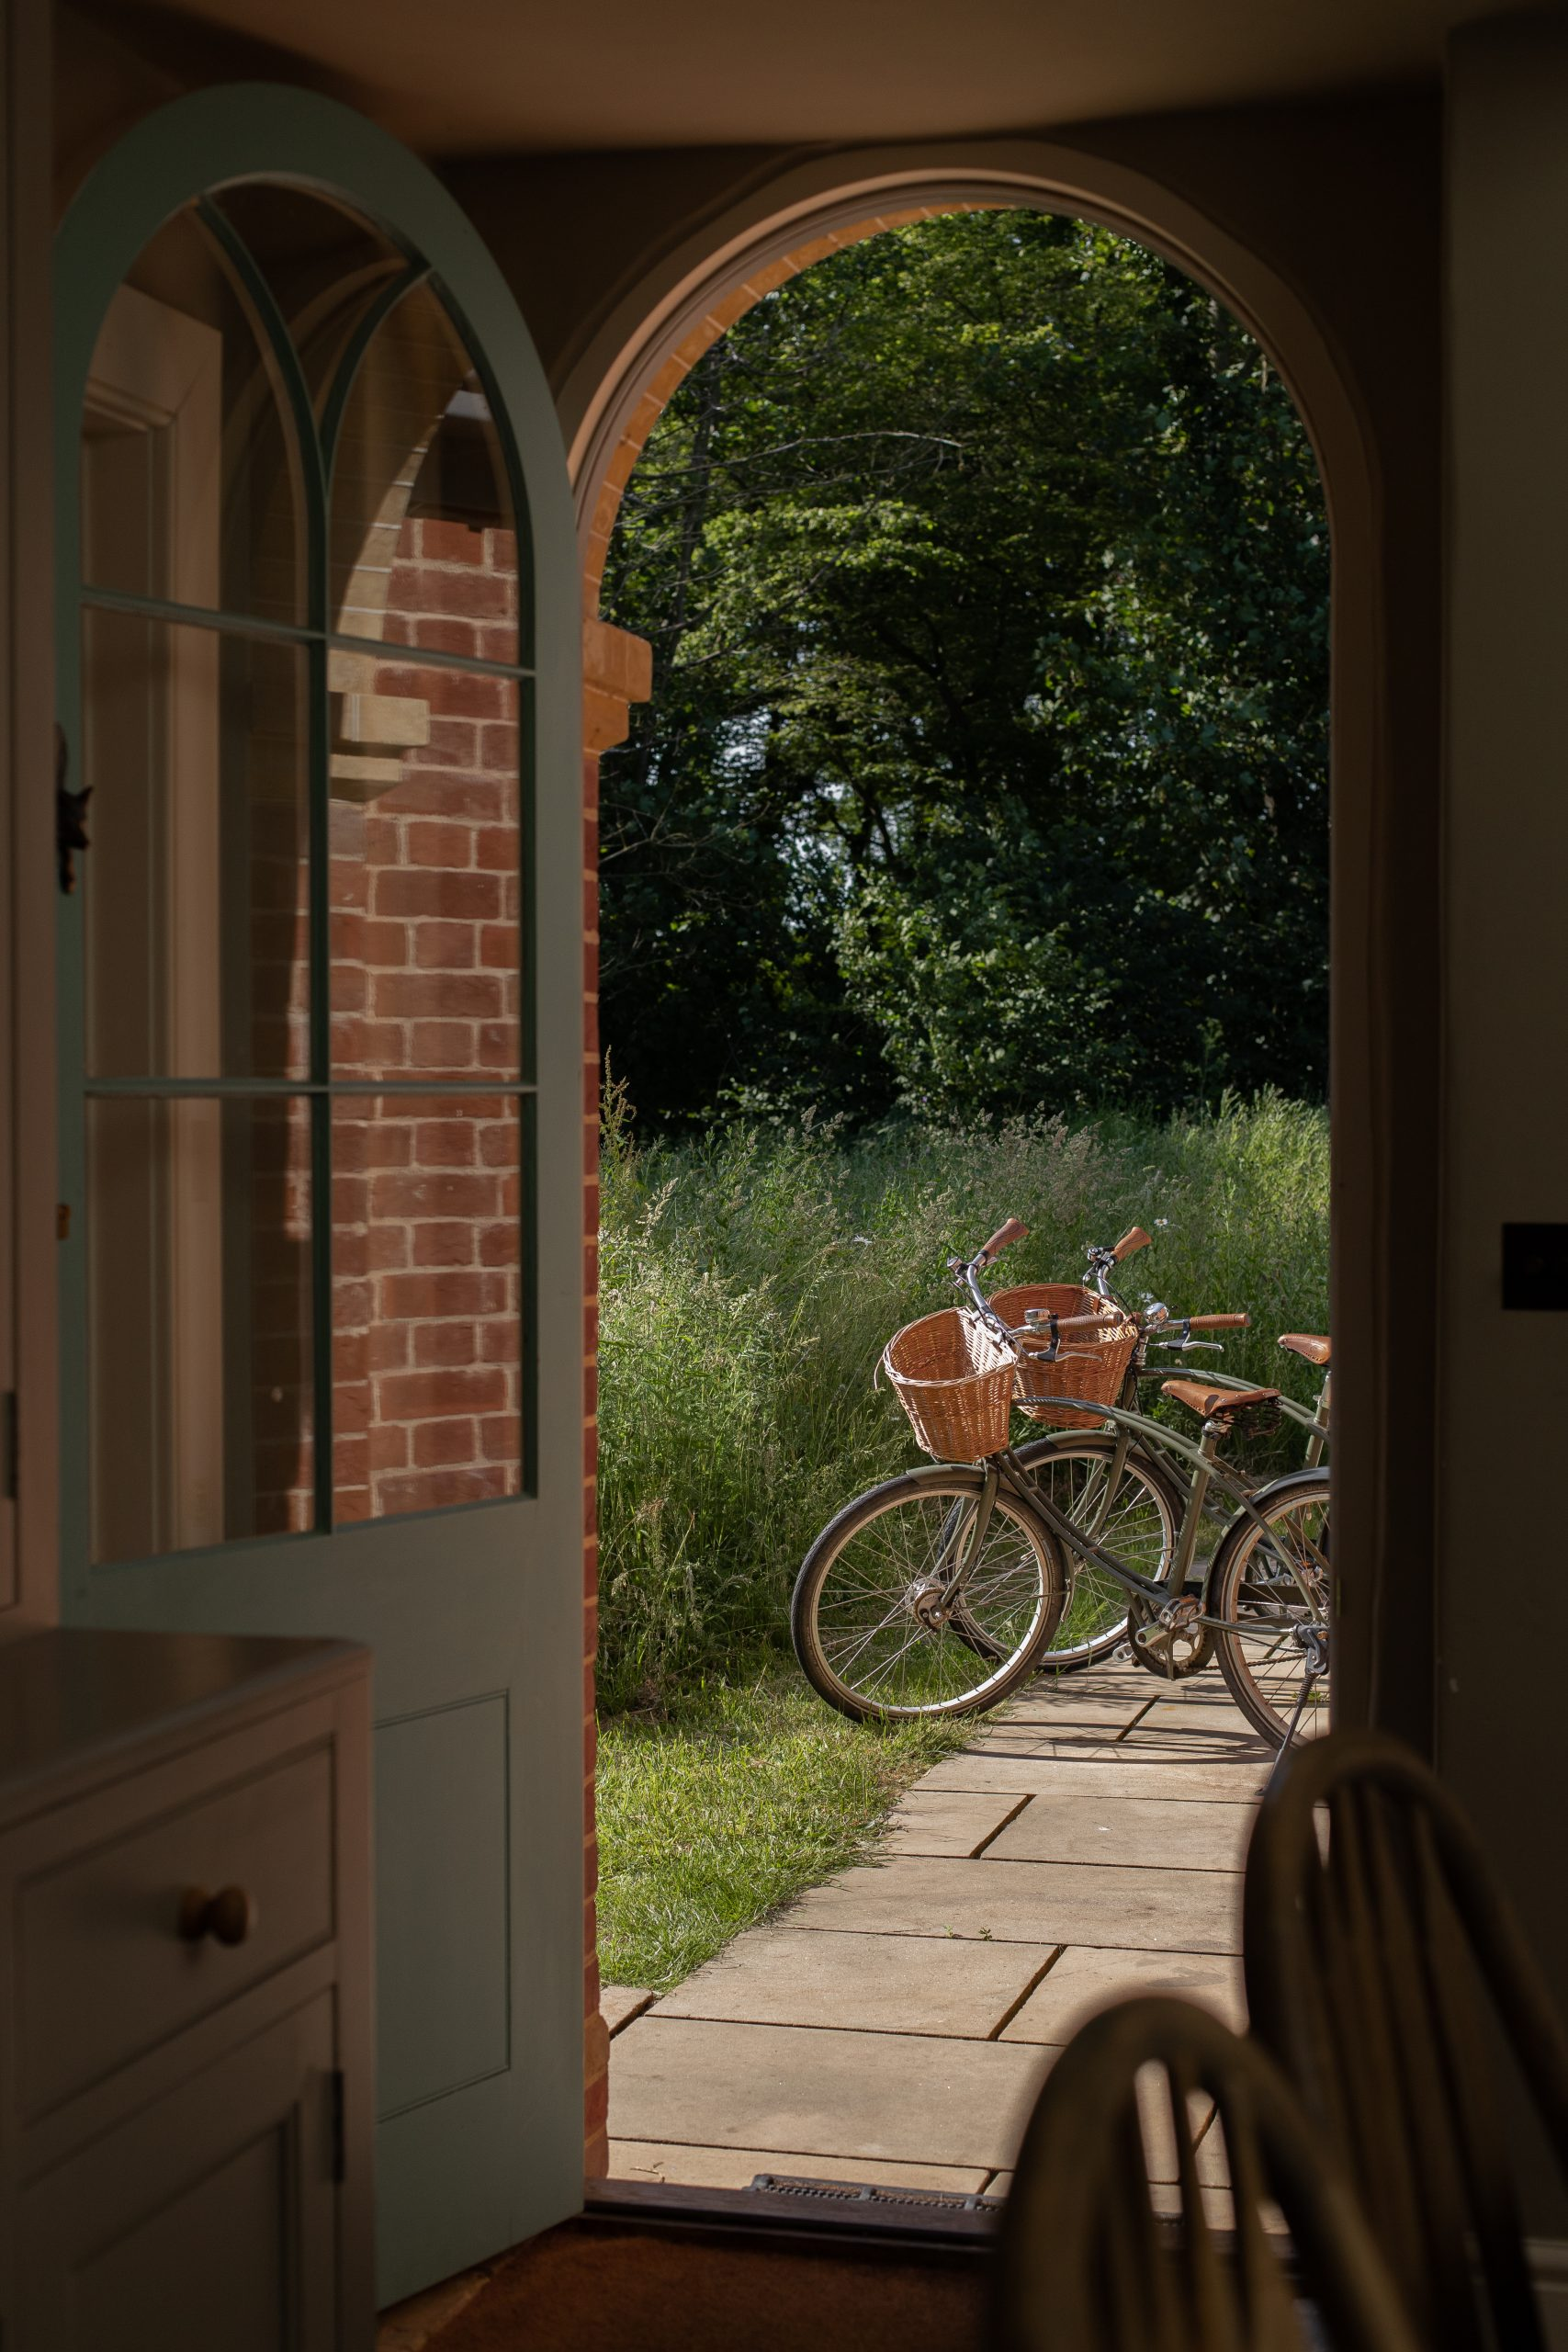 Bicycles through an archway door, looking out onto wild grasses by the Walled Garden Suffolk